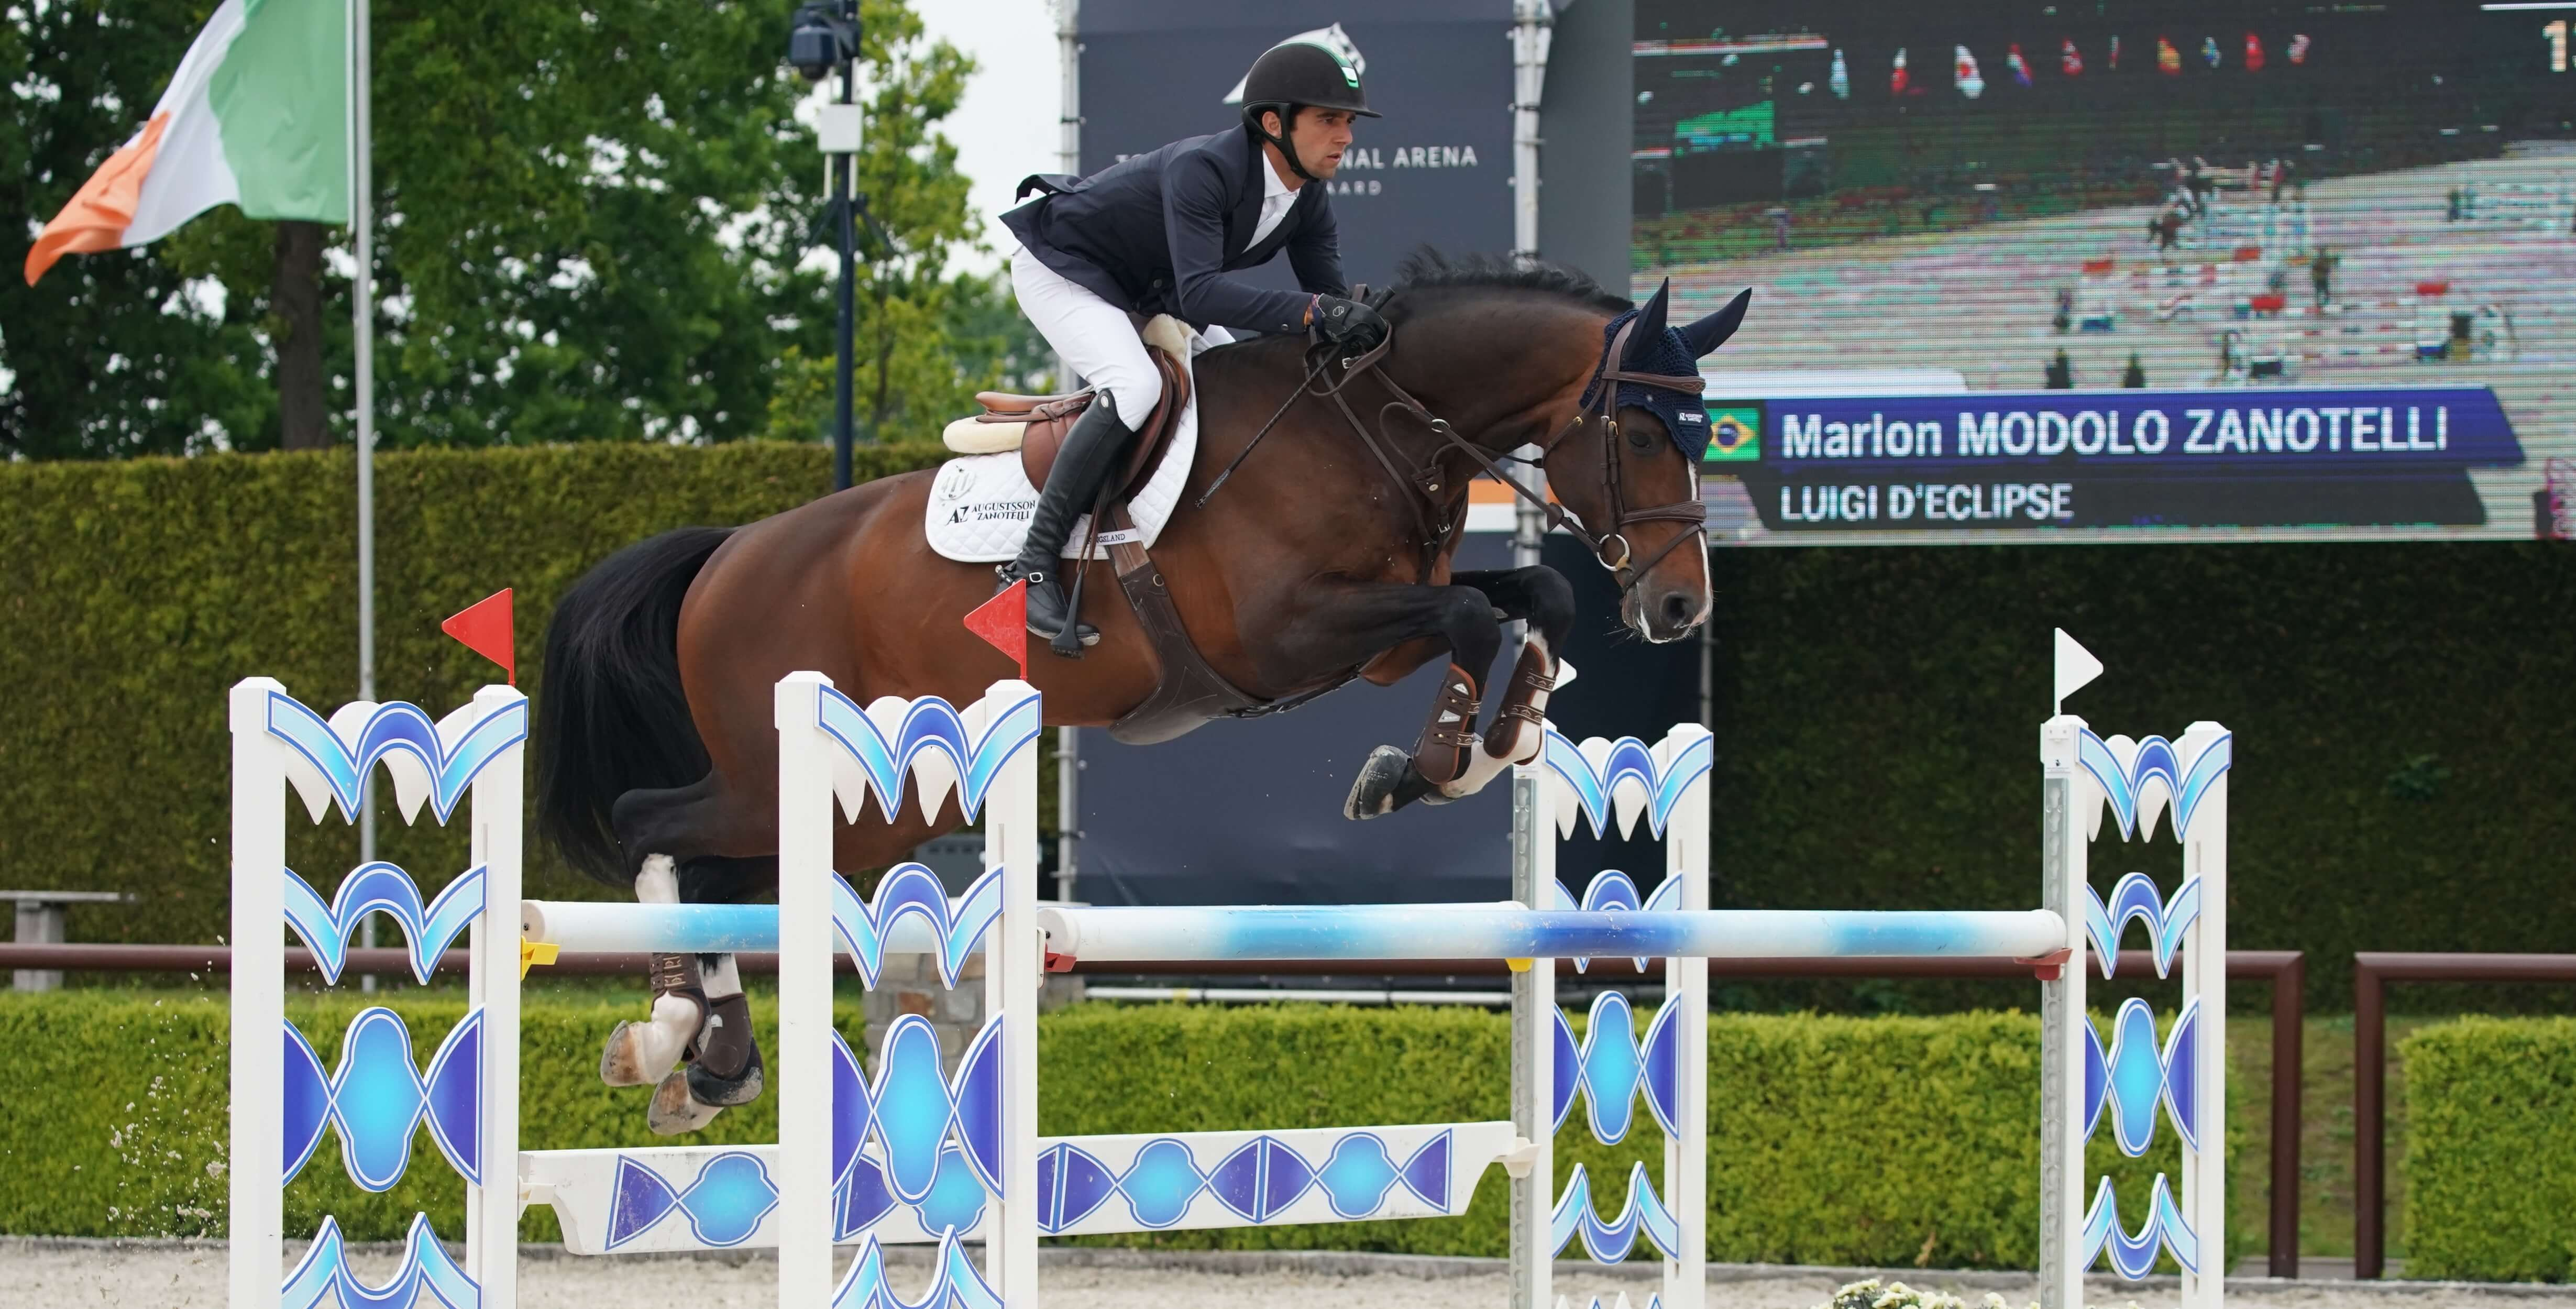 LUIGI D'ECLIPSE in top form during 3* Bonheiden